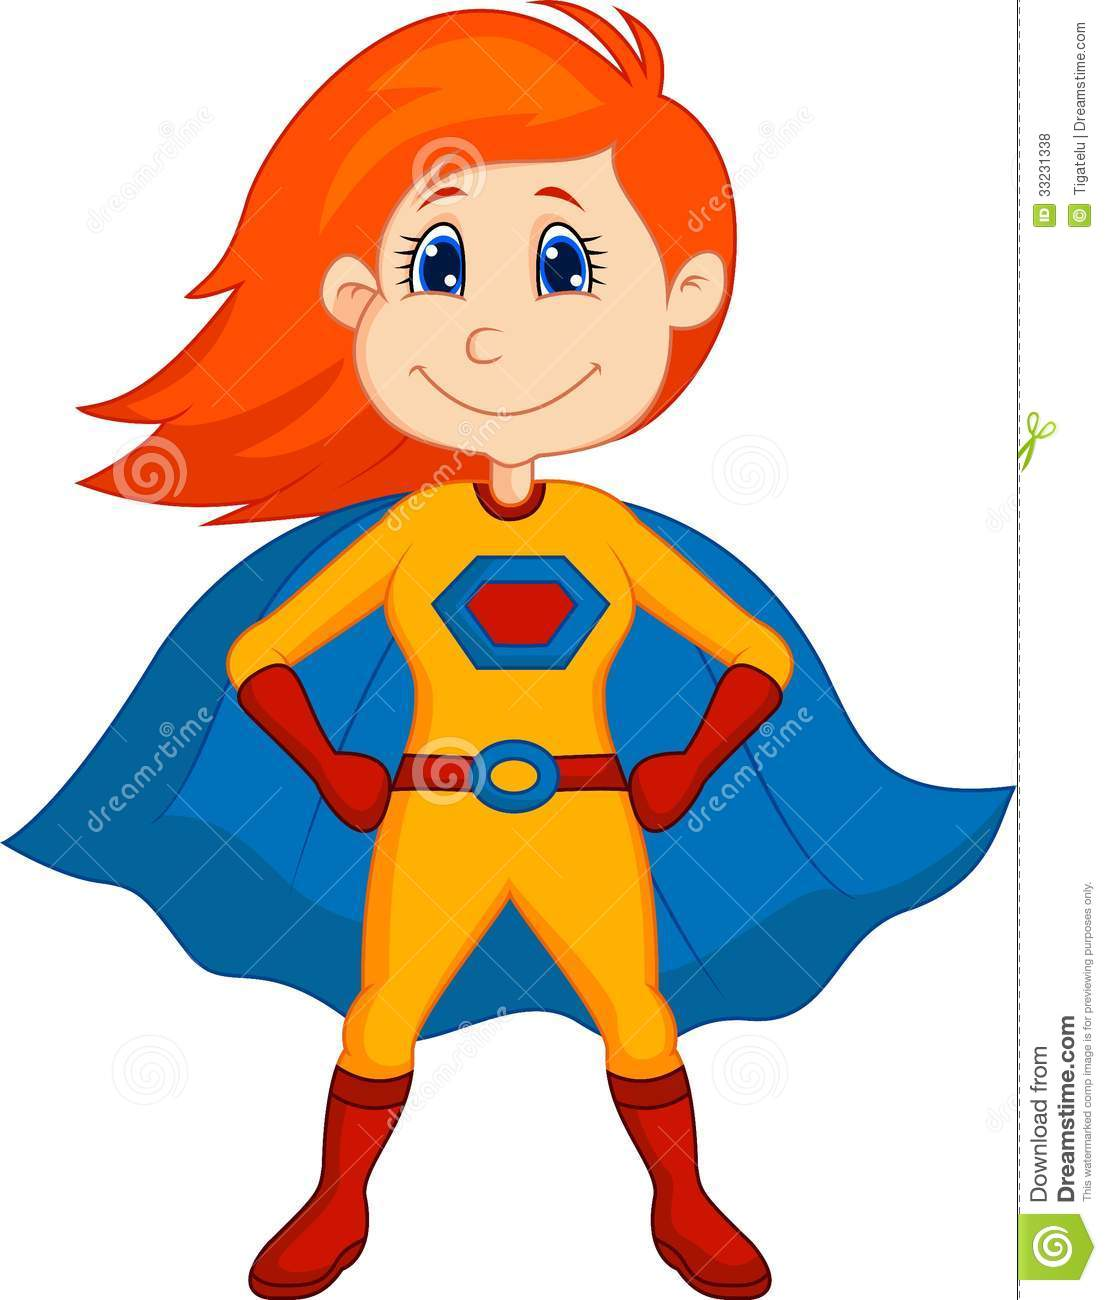 Superhero Kid Cartoon Royalty Free Stock Photos  Image: 33231338